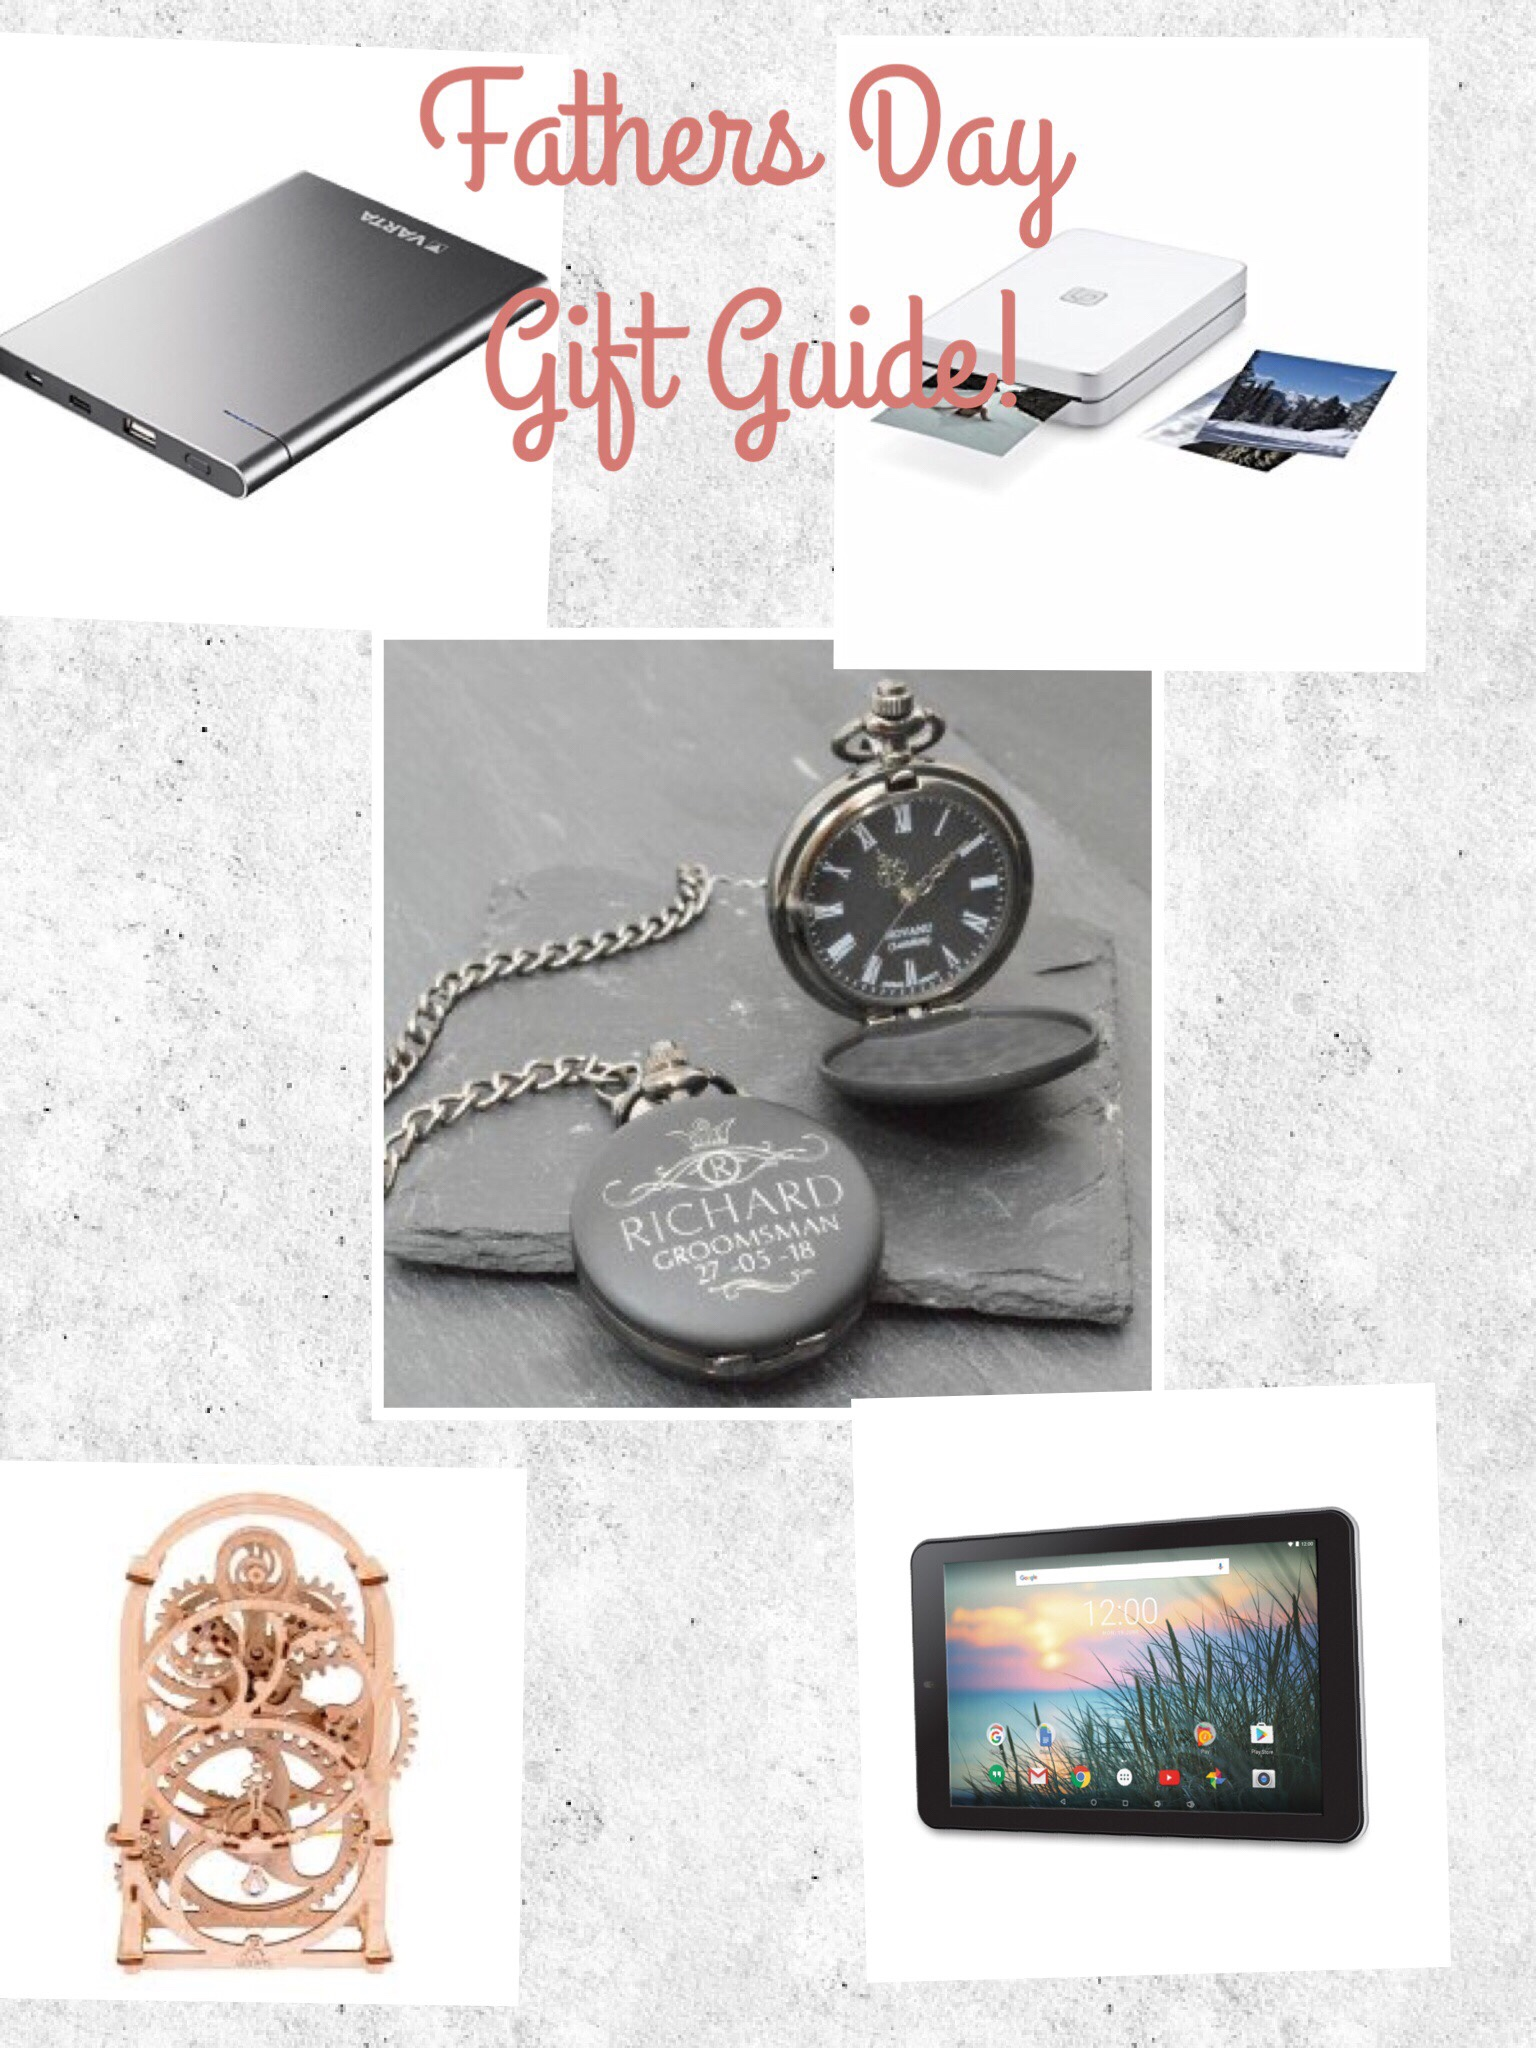 c73c2b83e037 ... difficult it can be to buy presents for men that they will actually  use. So I ve created my own small gift guide with a few more unusual gifts  for Dads.